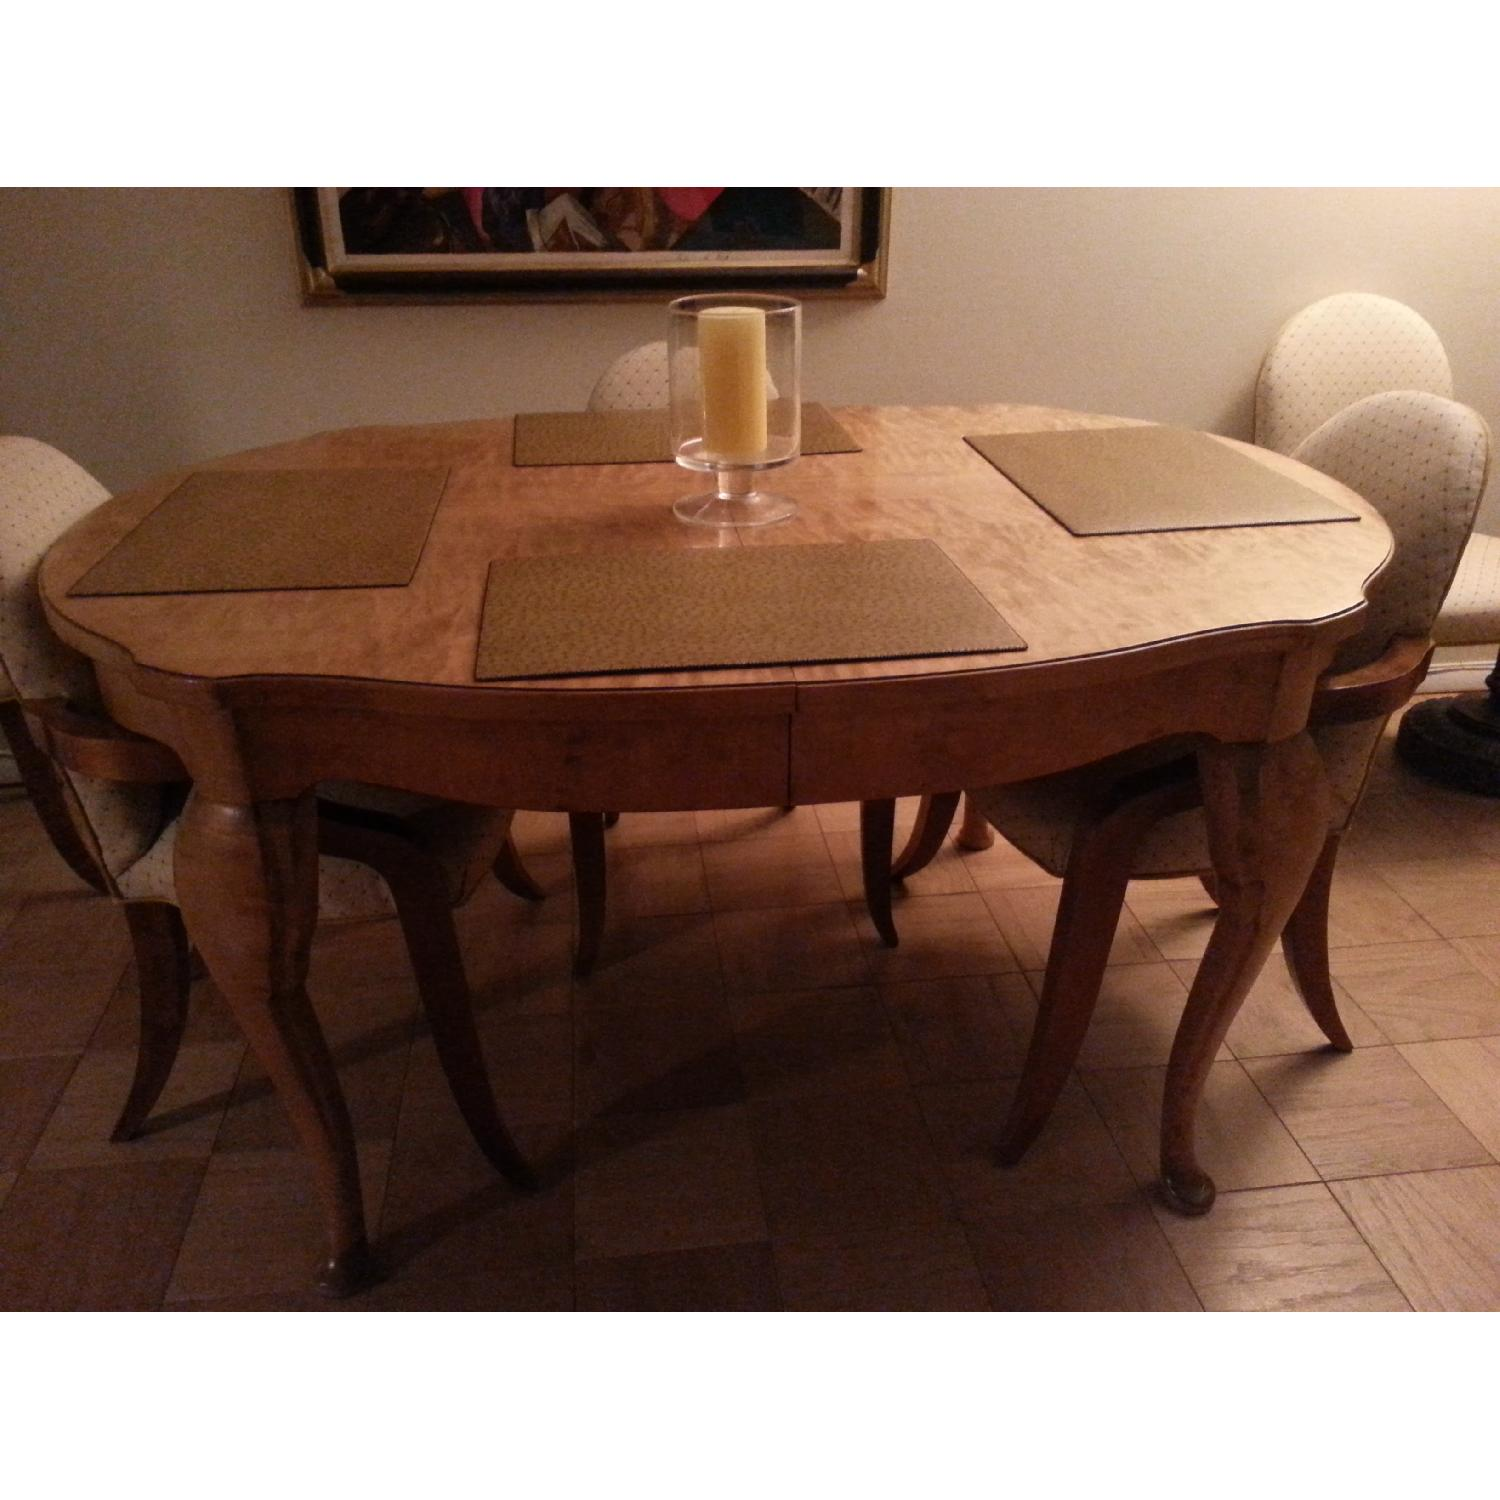 Eileen Fisher Antiques Blonde Birch Country French Dining Table - image-2